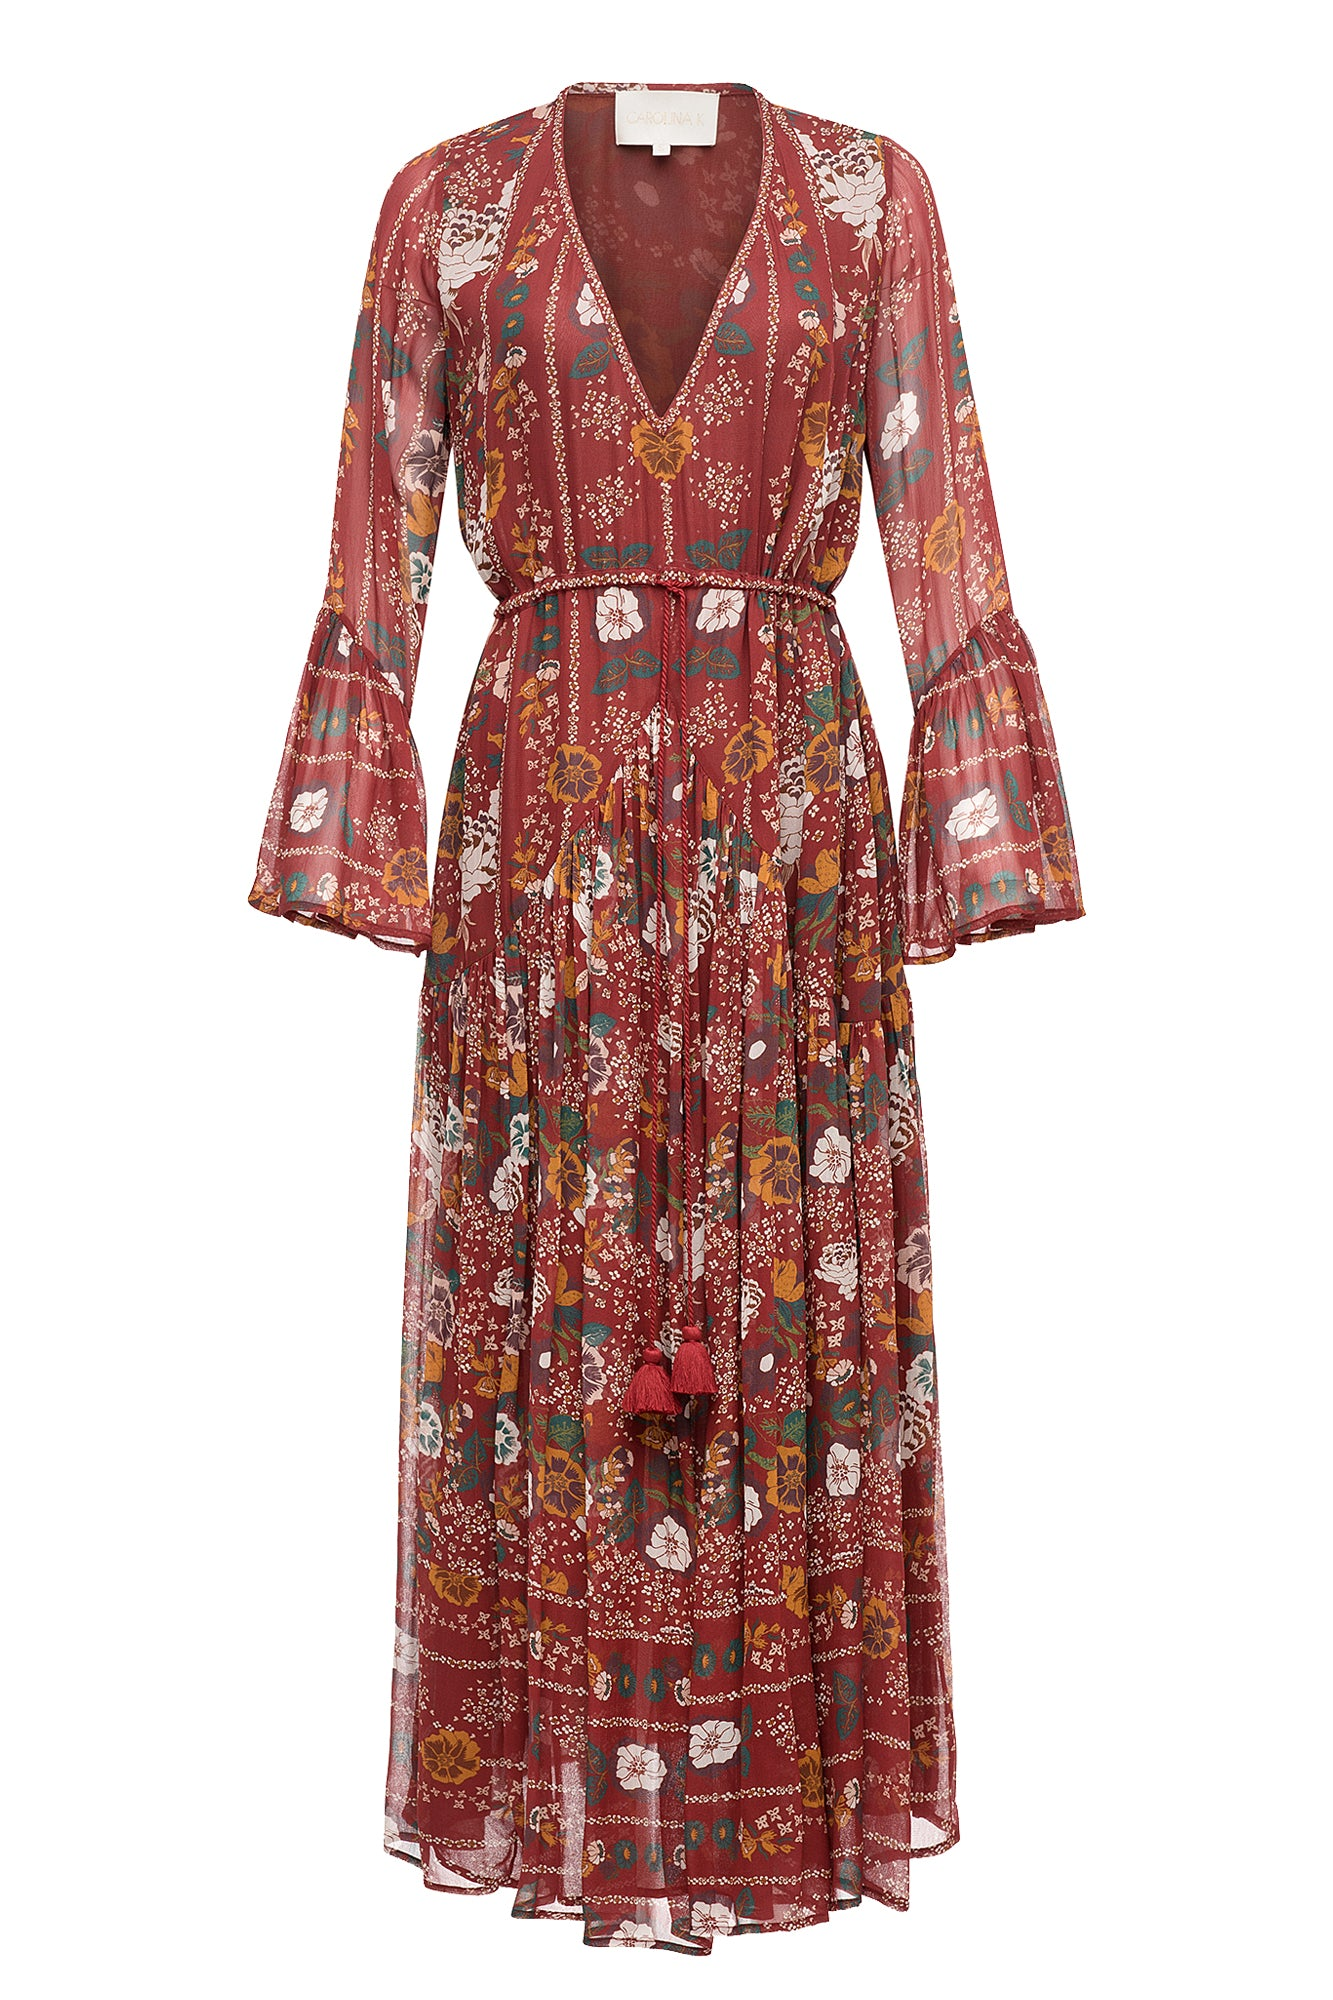 Carolina K Jude Dress Antique Flowers